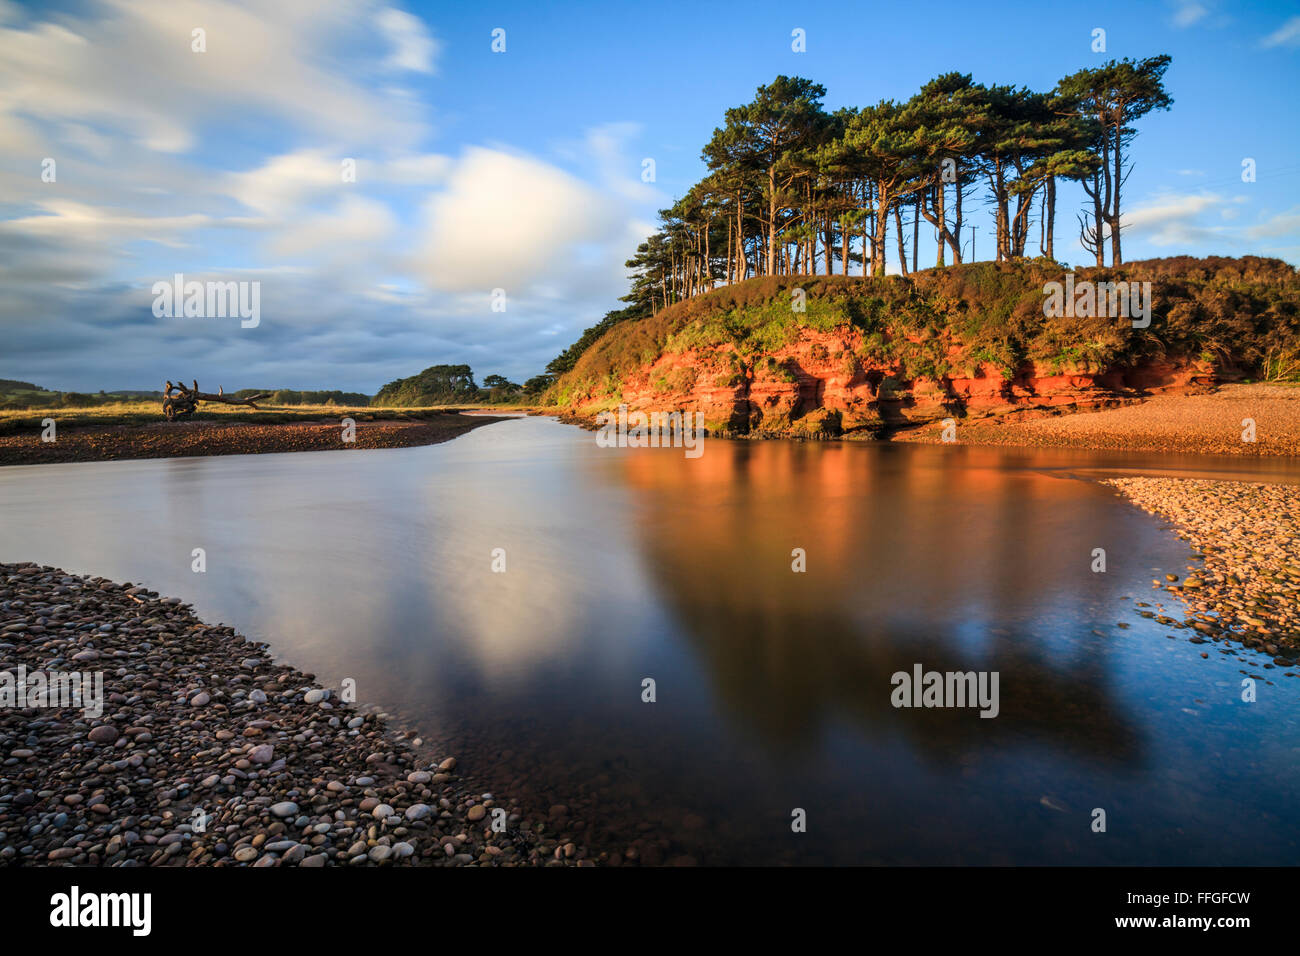 A stand of tree's on the River Otter, near Budleigh Salterton, in south east Devon. - Stock Image